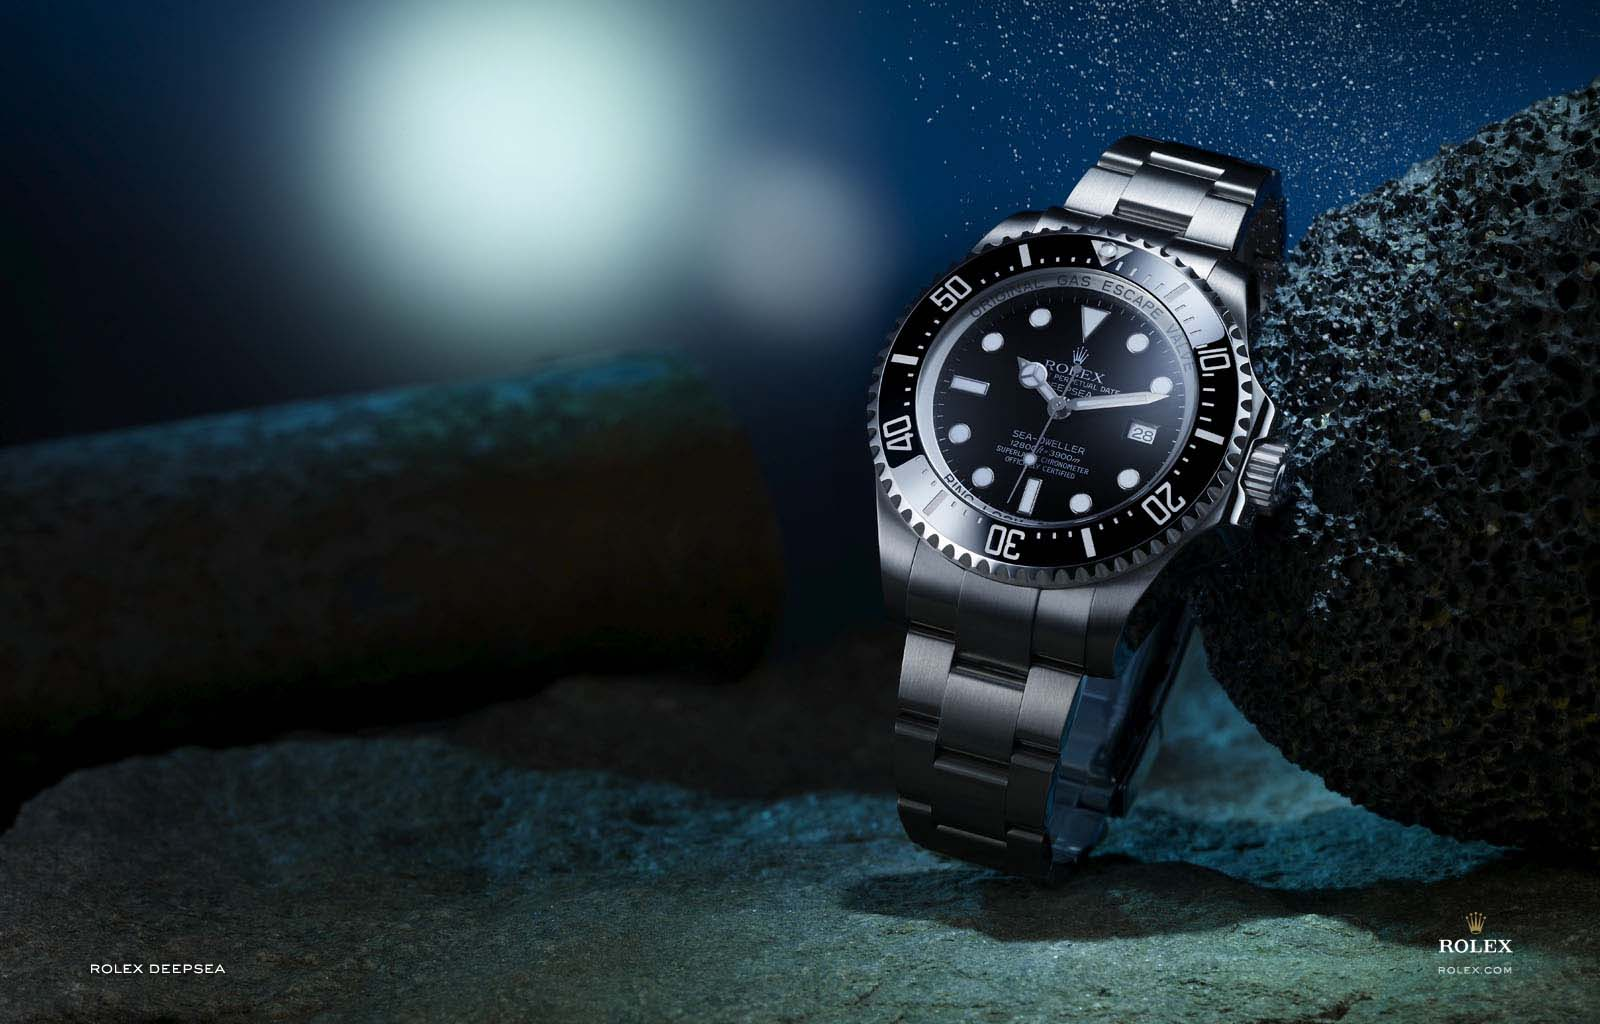 A MILLION OF WALLPAPERS.COM: ROLEX WATCHES WALLPAPERS